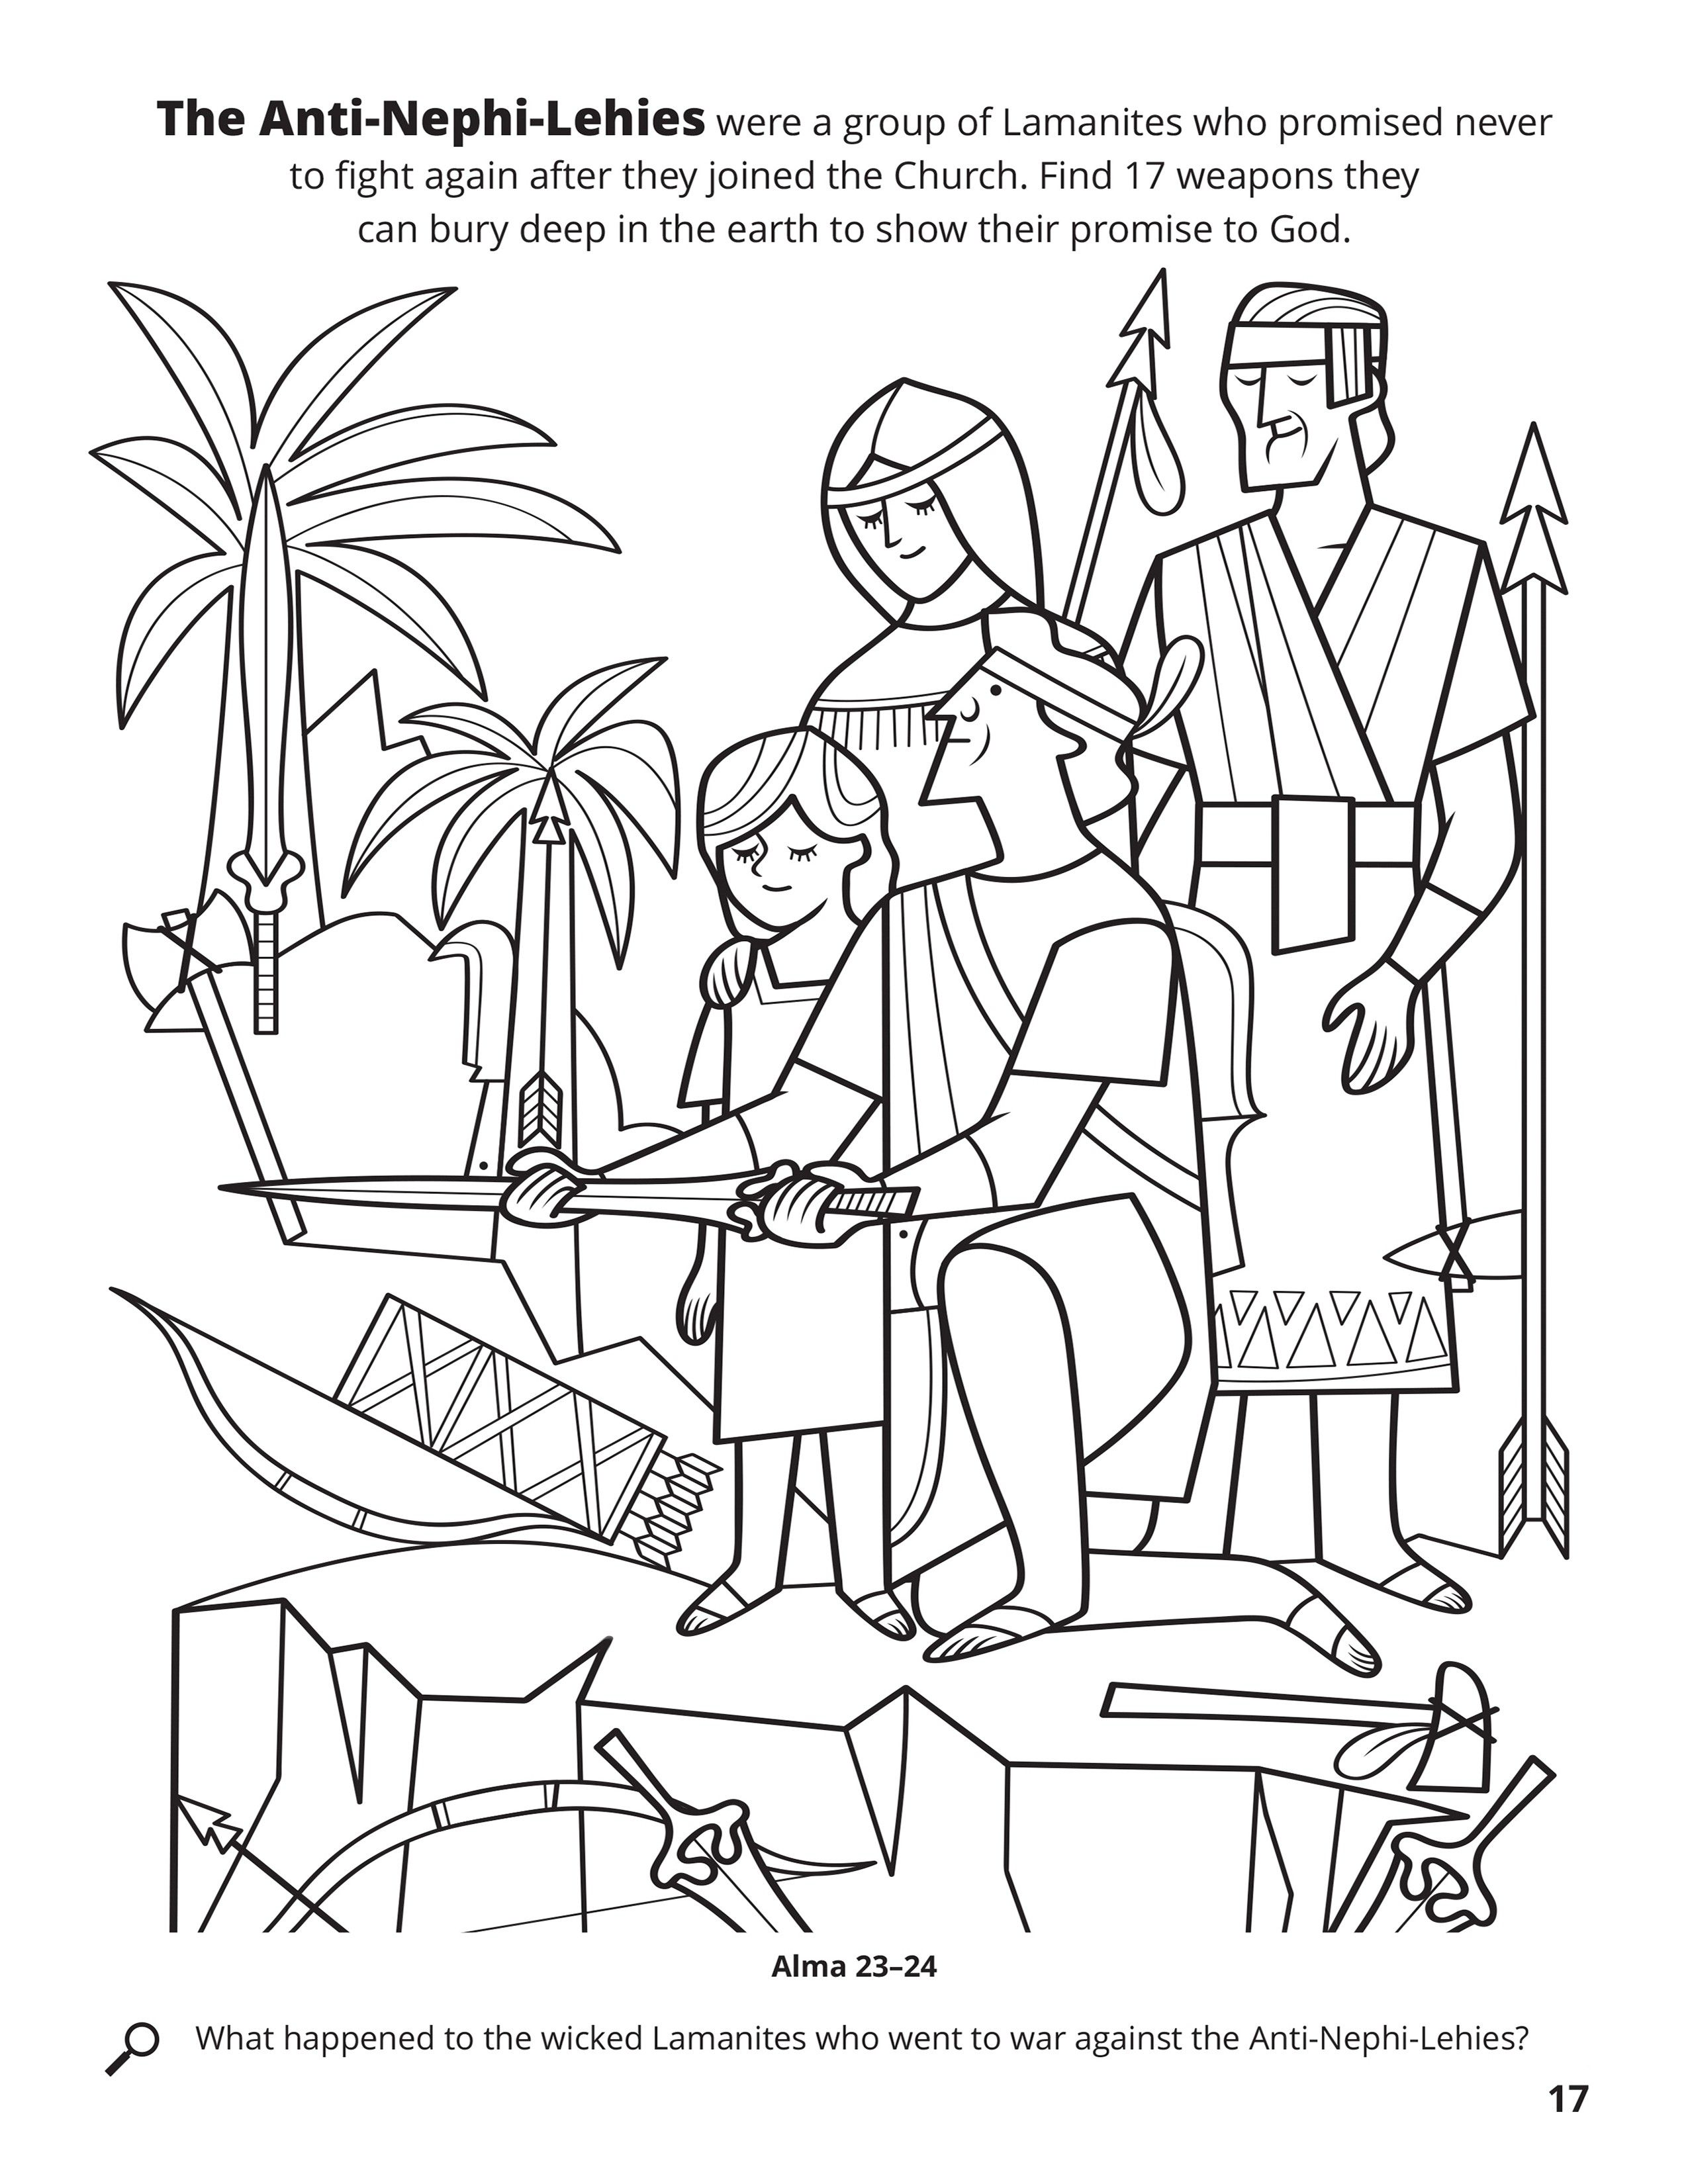 The Anti-Nephi-Lehies were a group of Lamanites who promised never to fight again after they joined the Church. Find 17 weapons they can bury deep in the earth to show their promise to God. Location in the Scriptures: Alma 23–24. Search the Scriptures: What happened to the wicked Lamanites who went to war against the Anti-Nephi-Lehies?